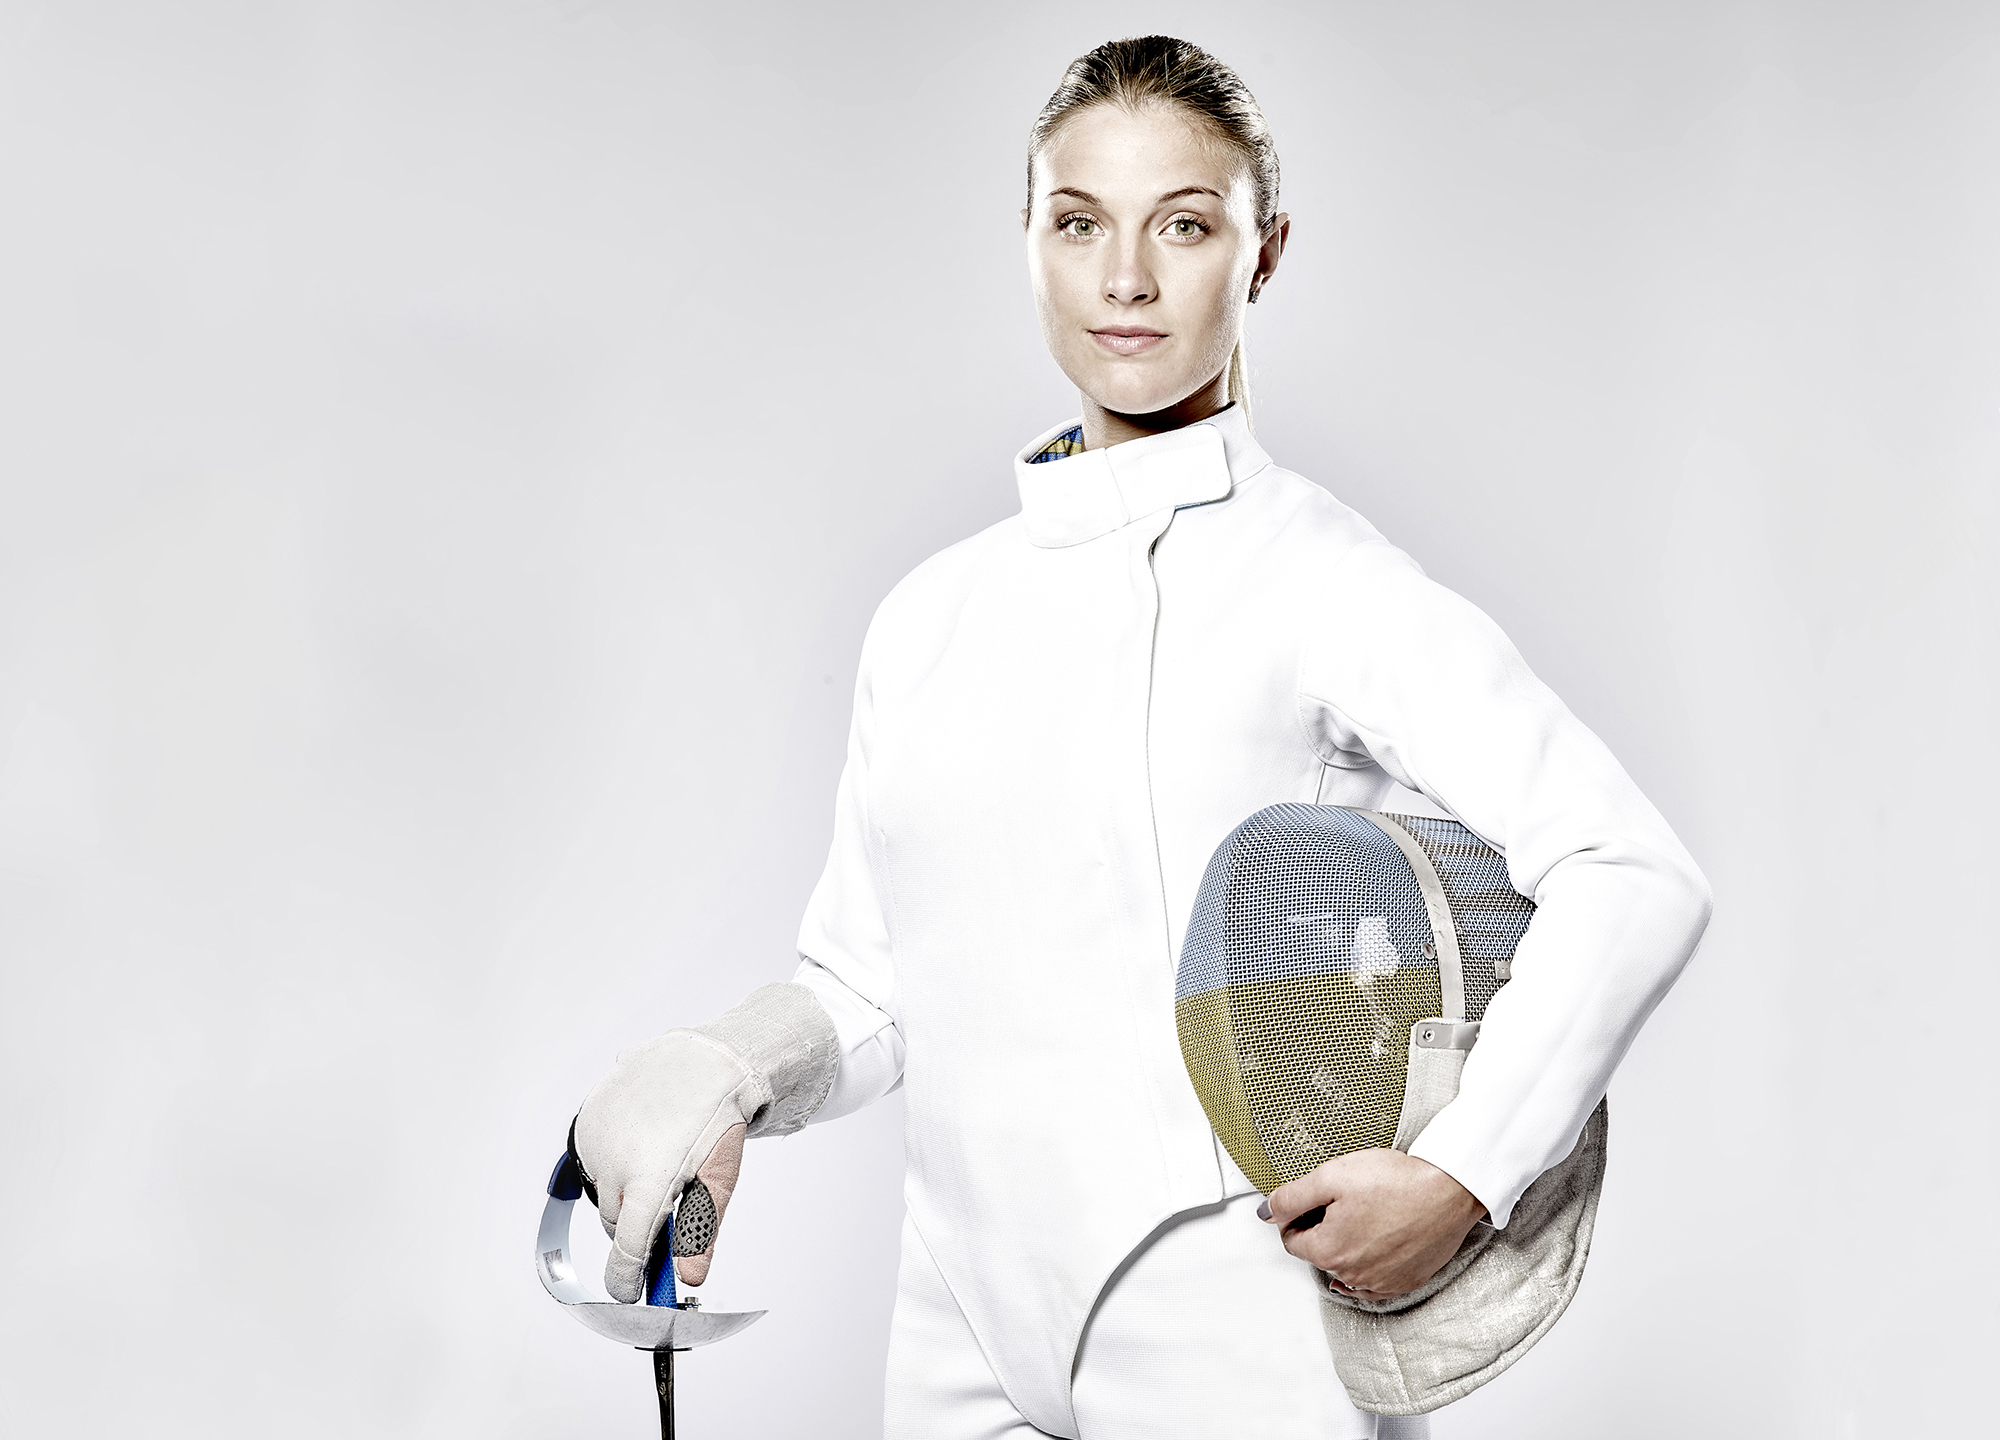 John Donoghue - portrait of fencer